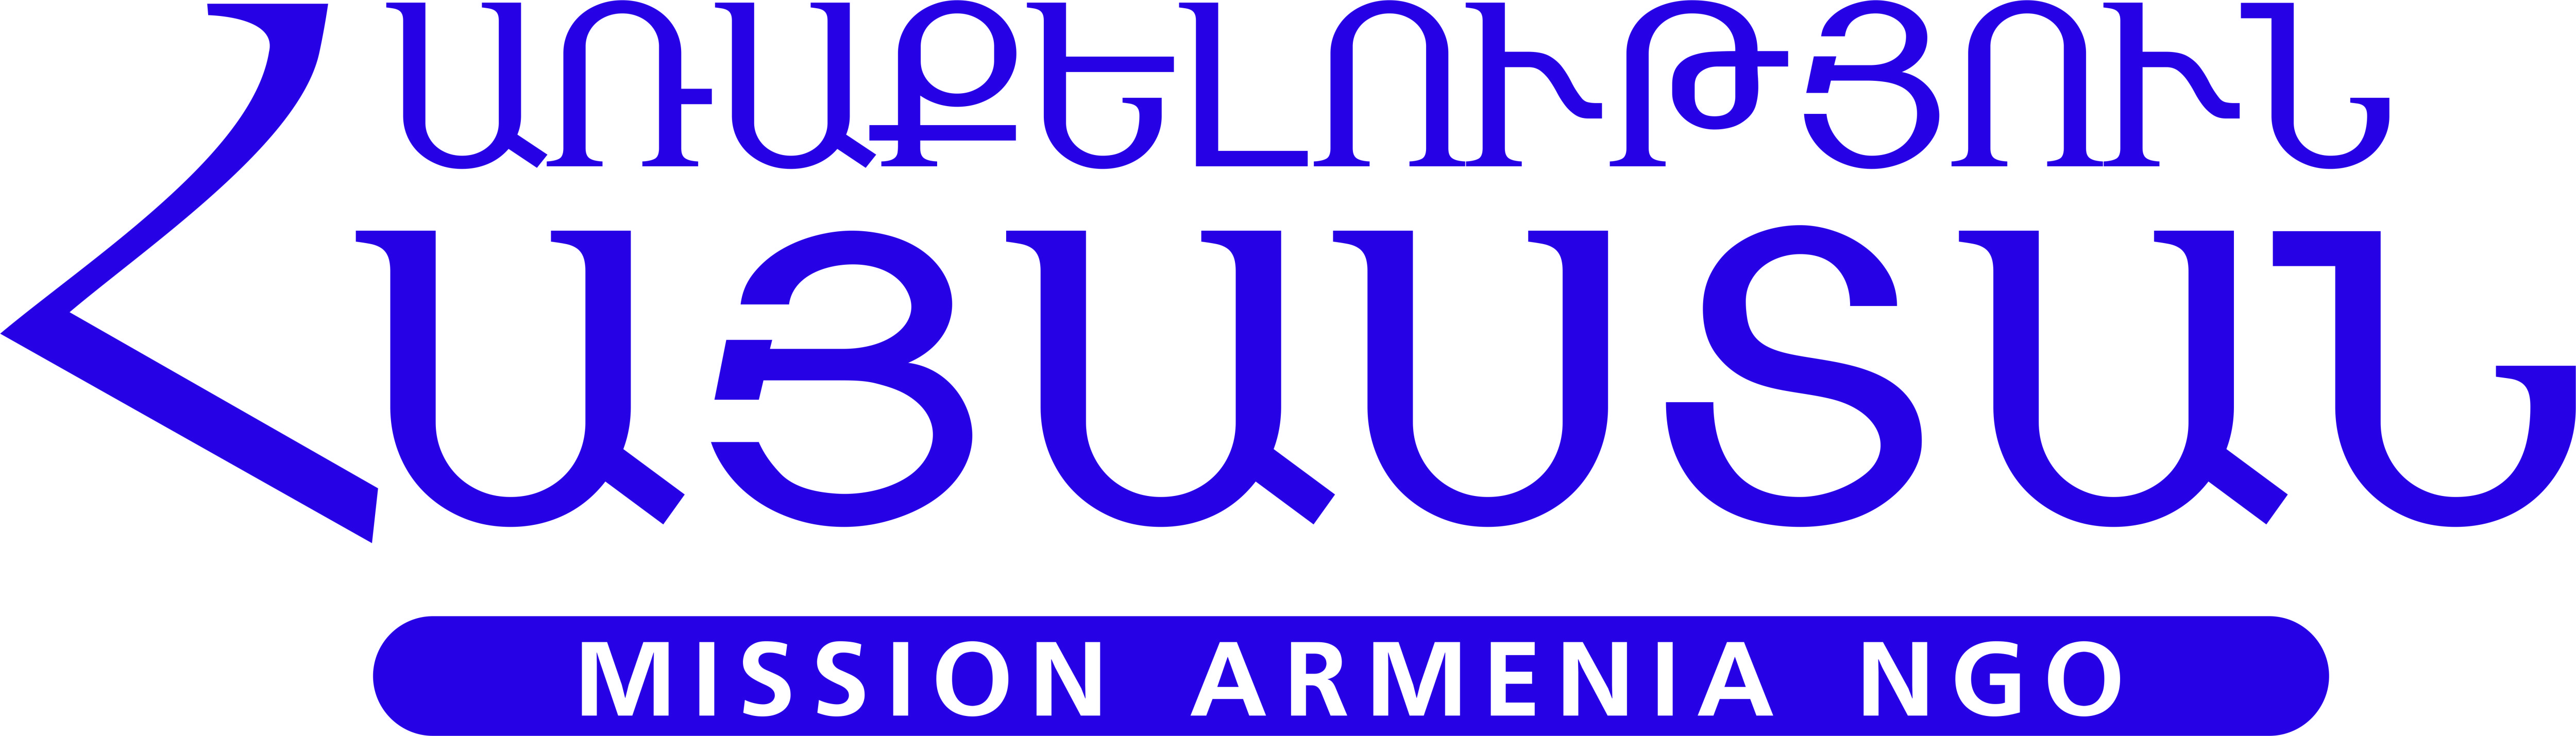 Mission Armenia NGO